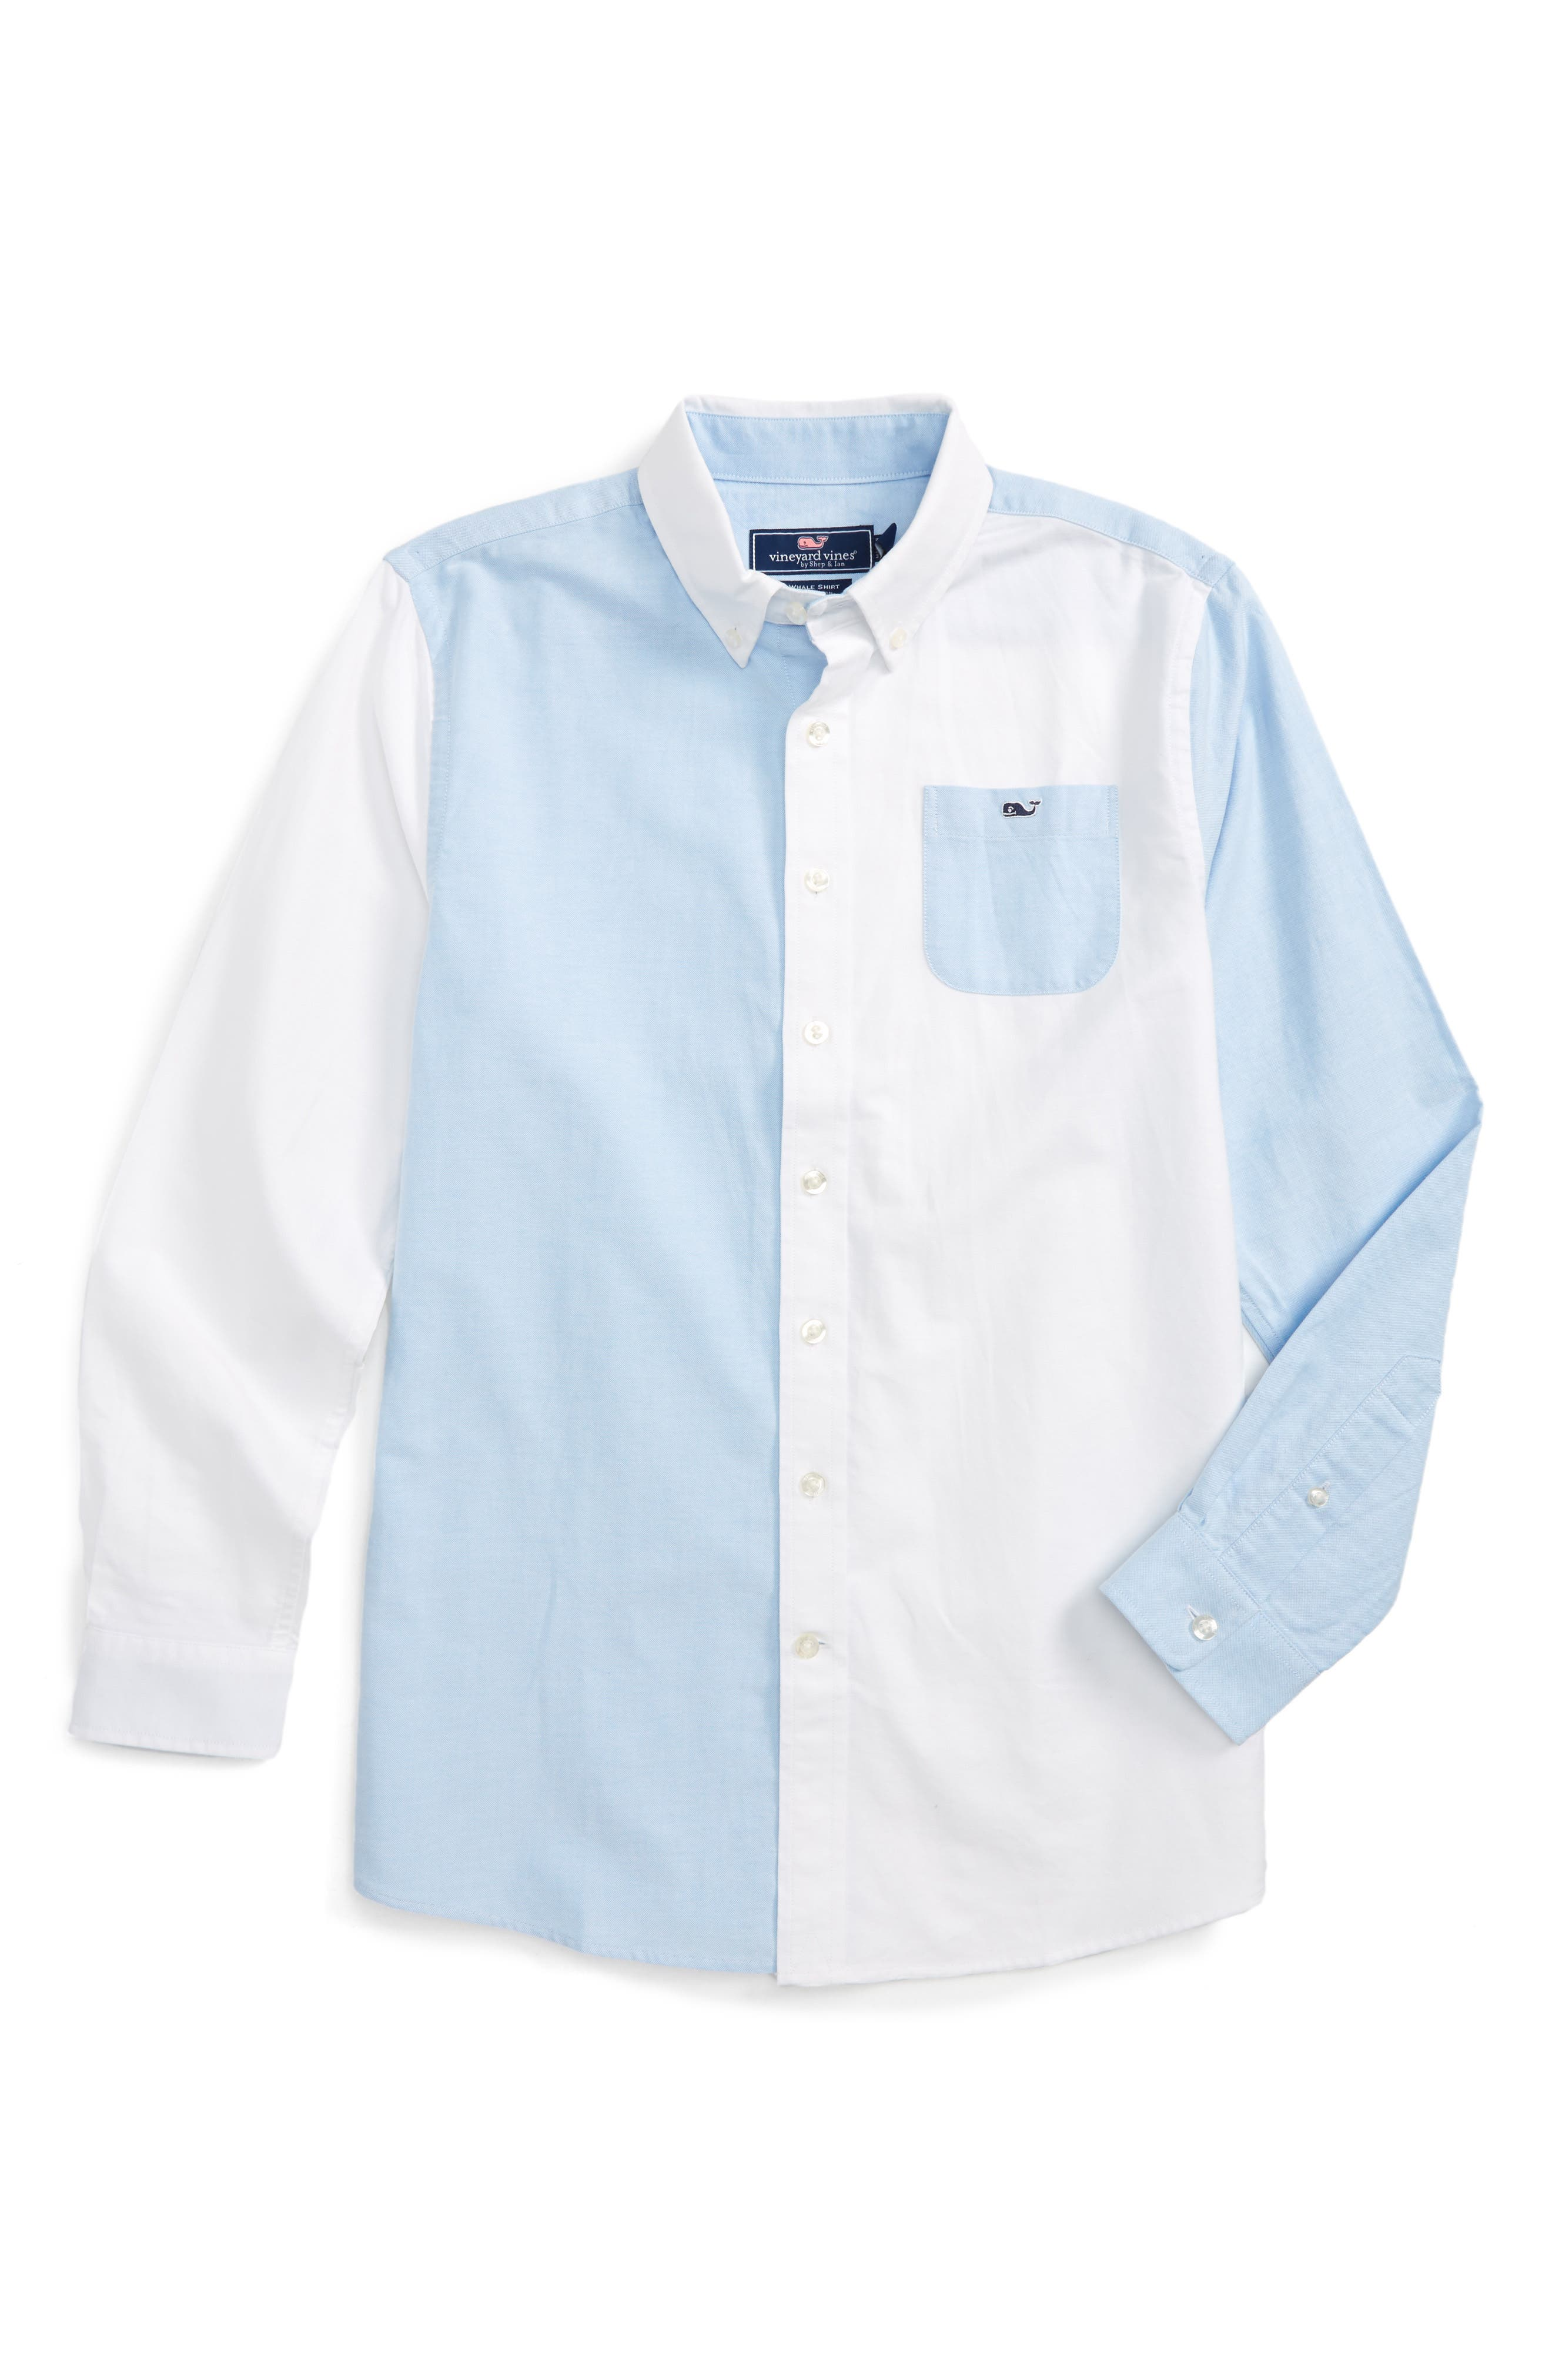 Main Image - vineyard vines Party Whale Oxford Shirt (Big Boys)